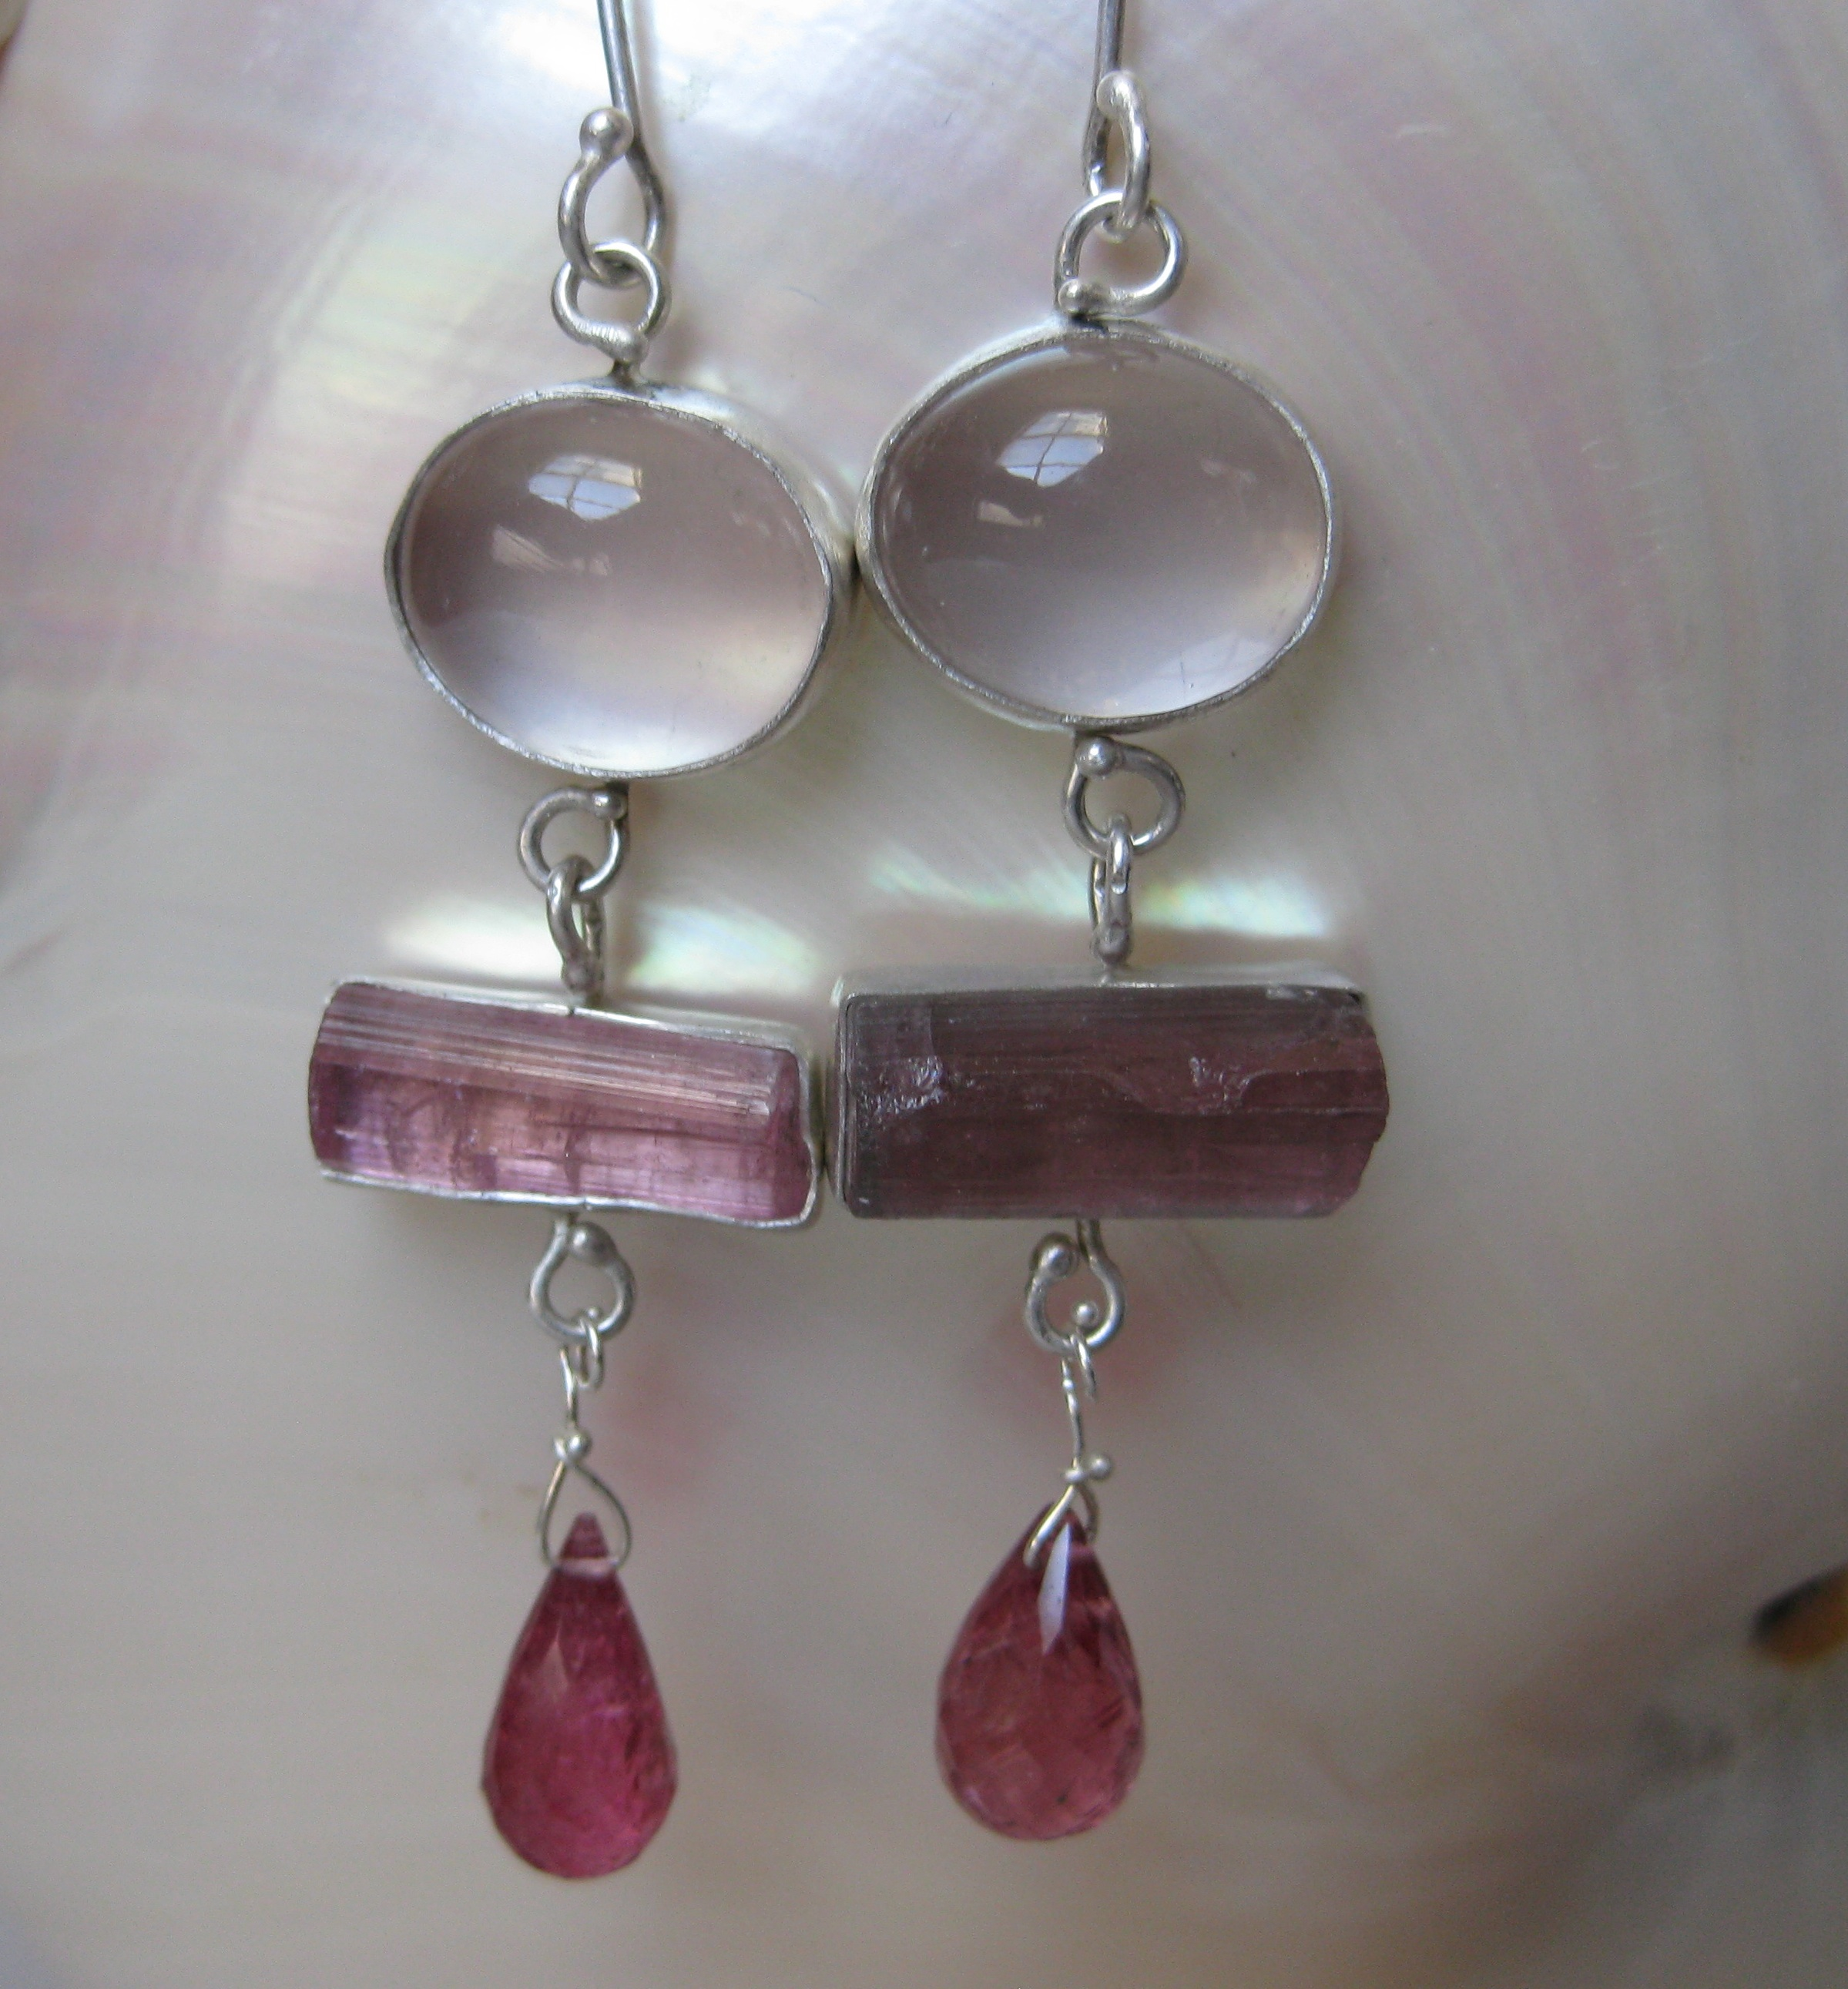 Rose Quartz Earrings with Raw Pink Tourmaline Crystals and Pink Tourmaline Briolettes